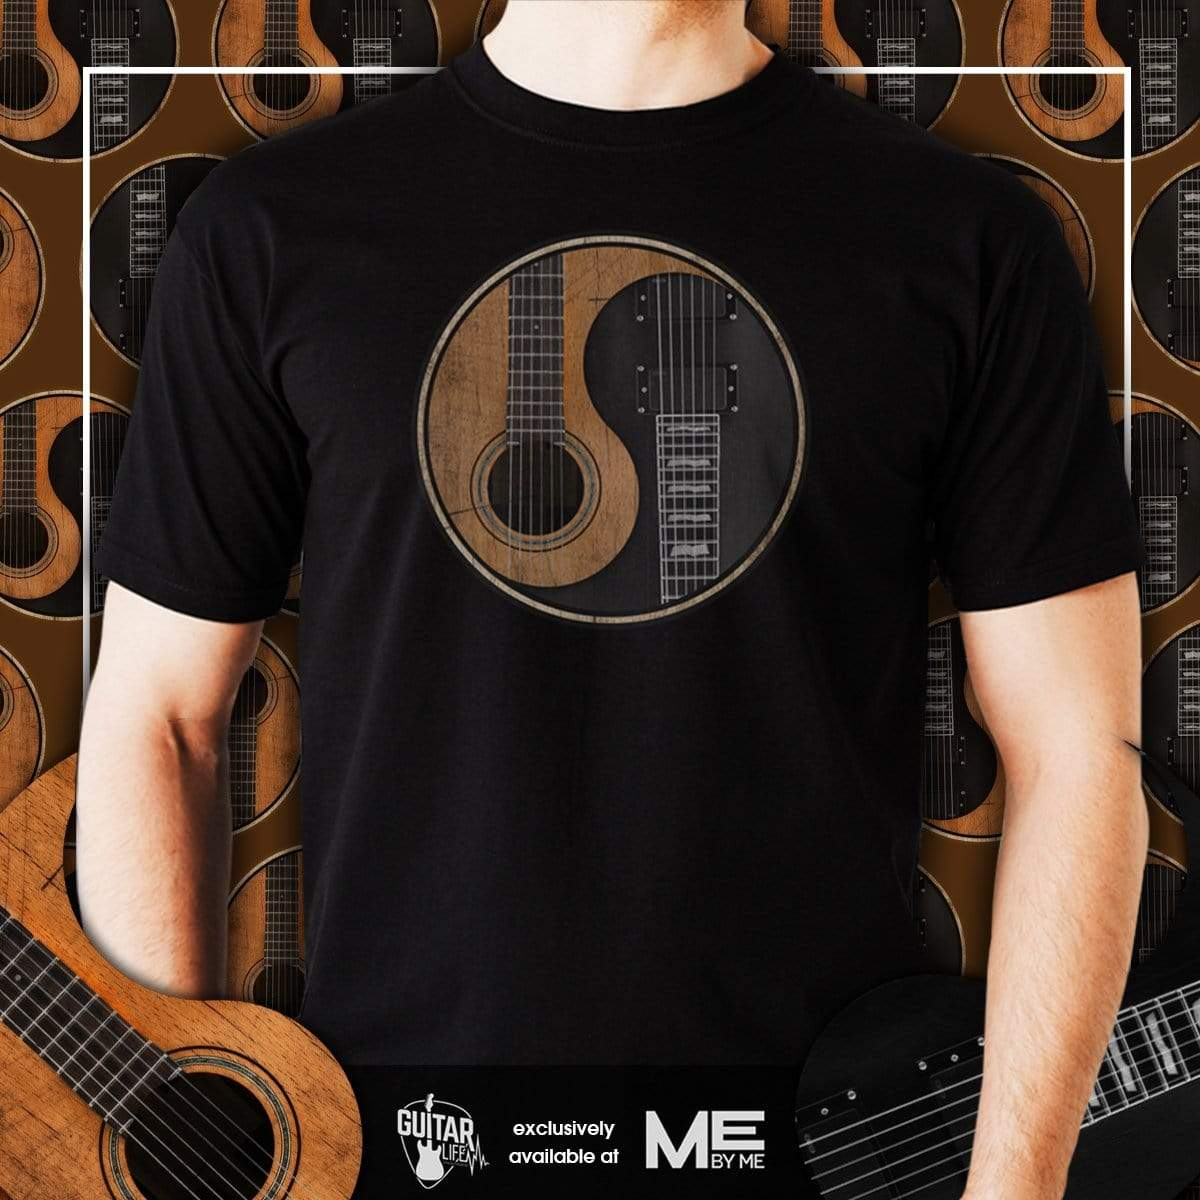 Yin Yang Guitar - Mens - T-Shirt - Sizes Small to 5XL - Offer Wall